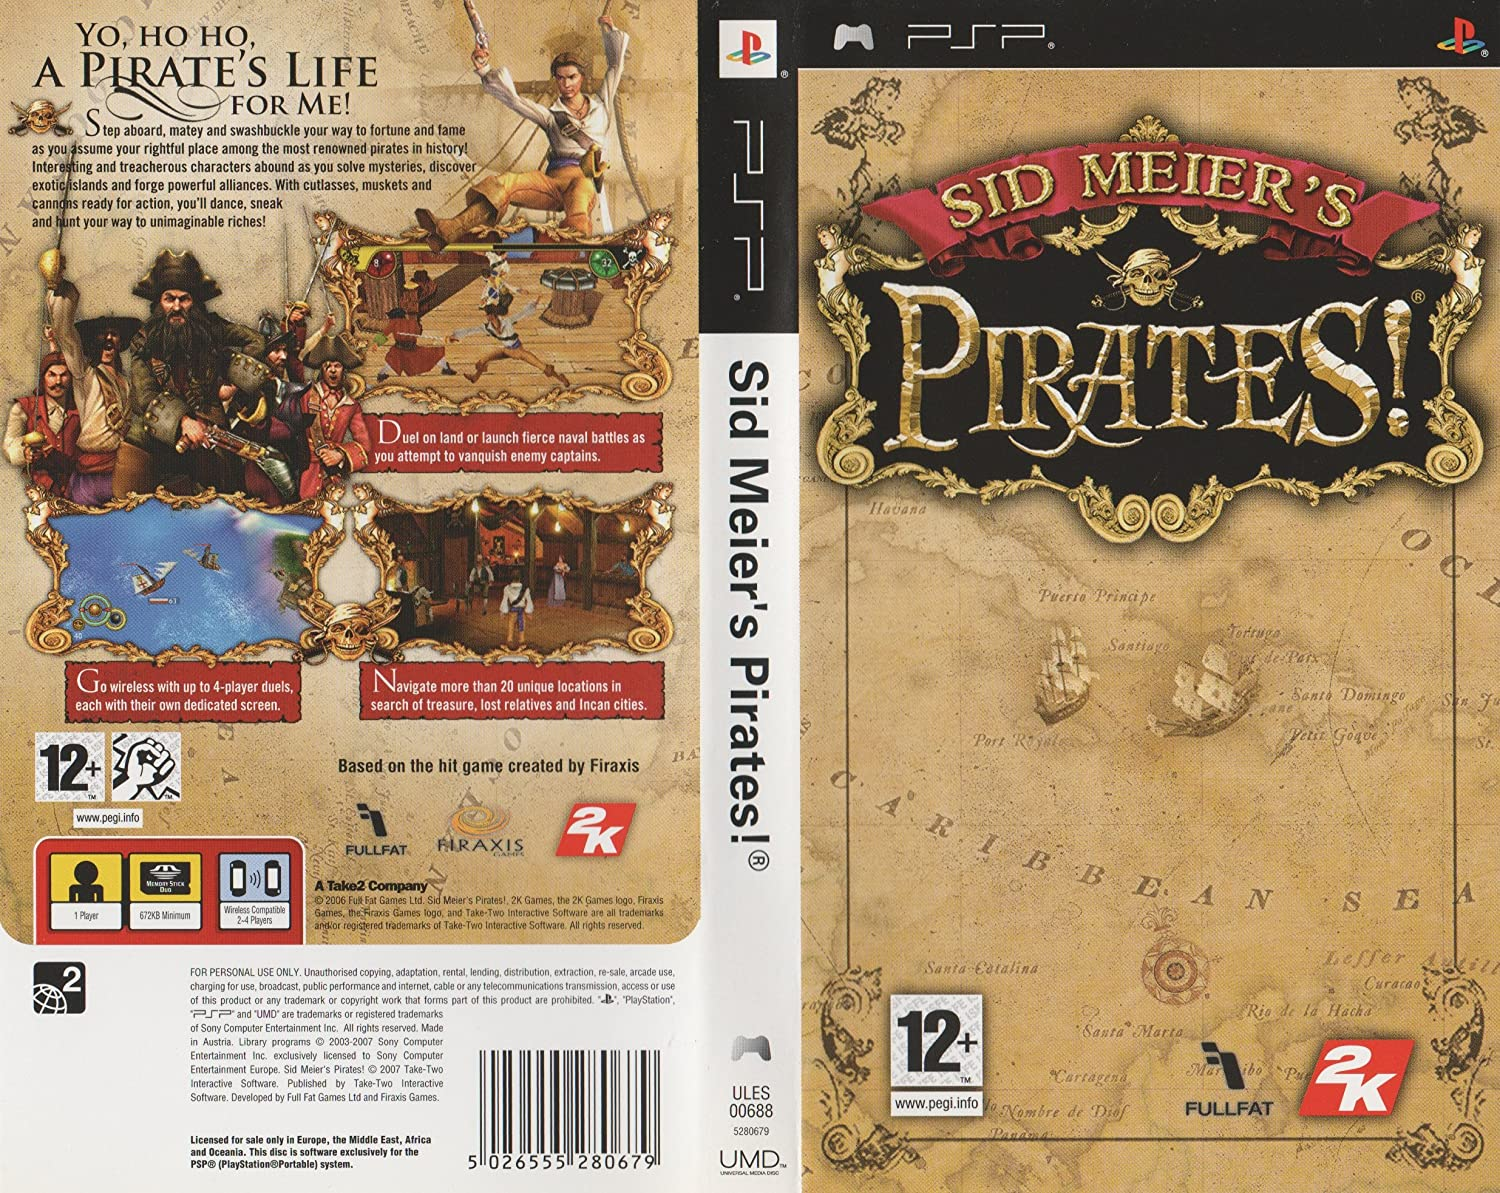 Amazon.com: Sid Meier s Piratas (PSP) por tomar 2: Video Games